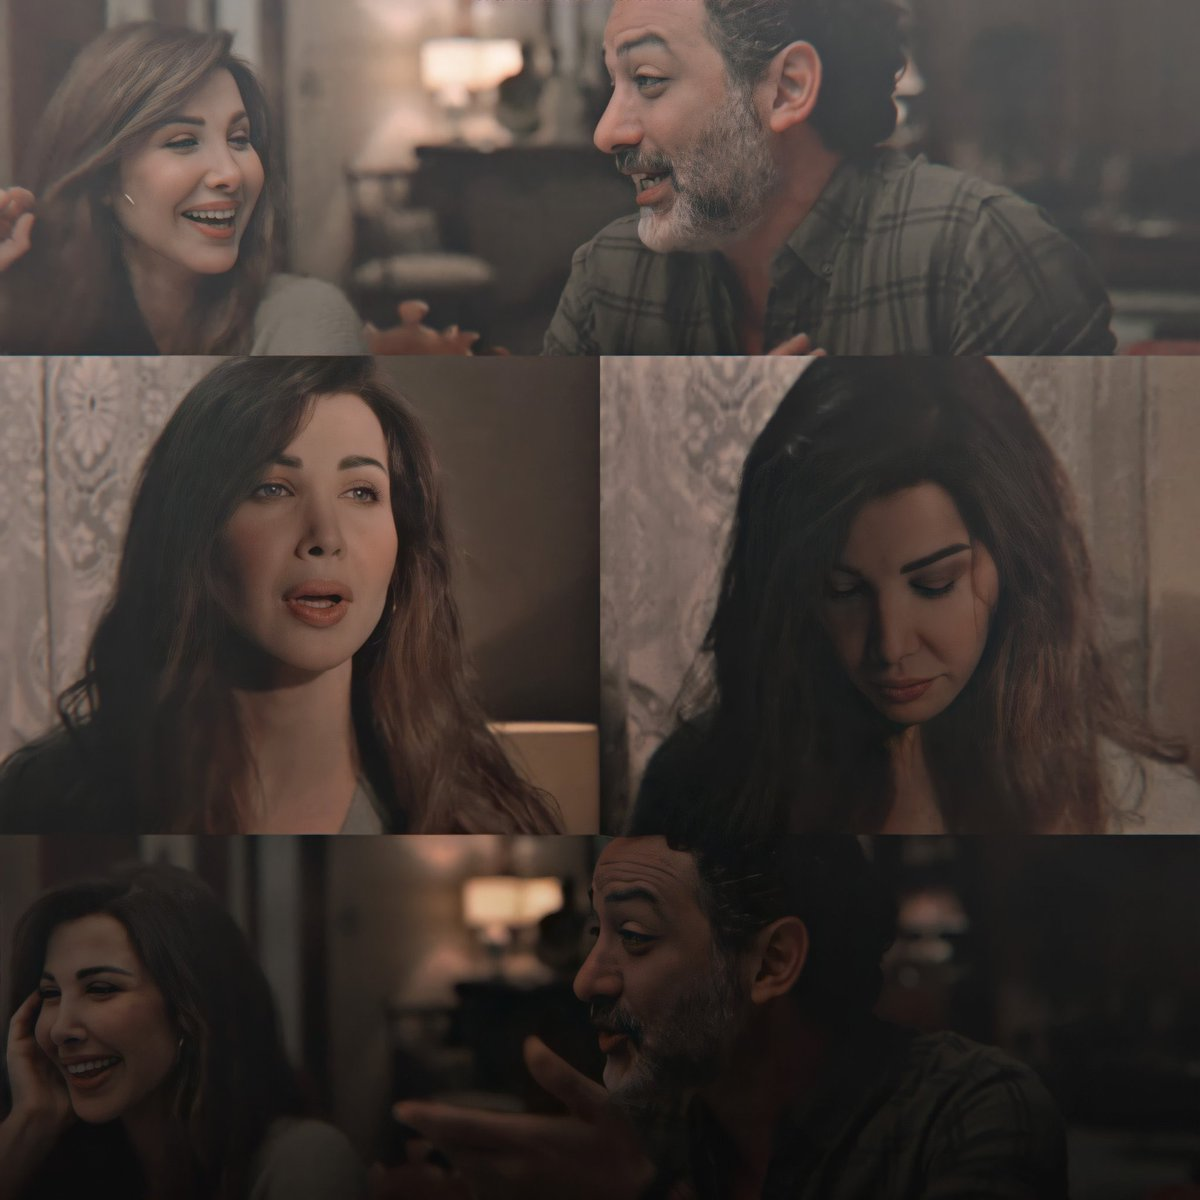 Every day is never complete without watching to #IlaBeirutAlOntha  ❤️🇱🇧🎵 #الى_بيروت_الانثى  @NancyAjram